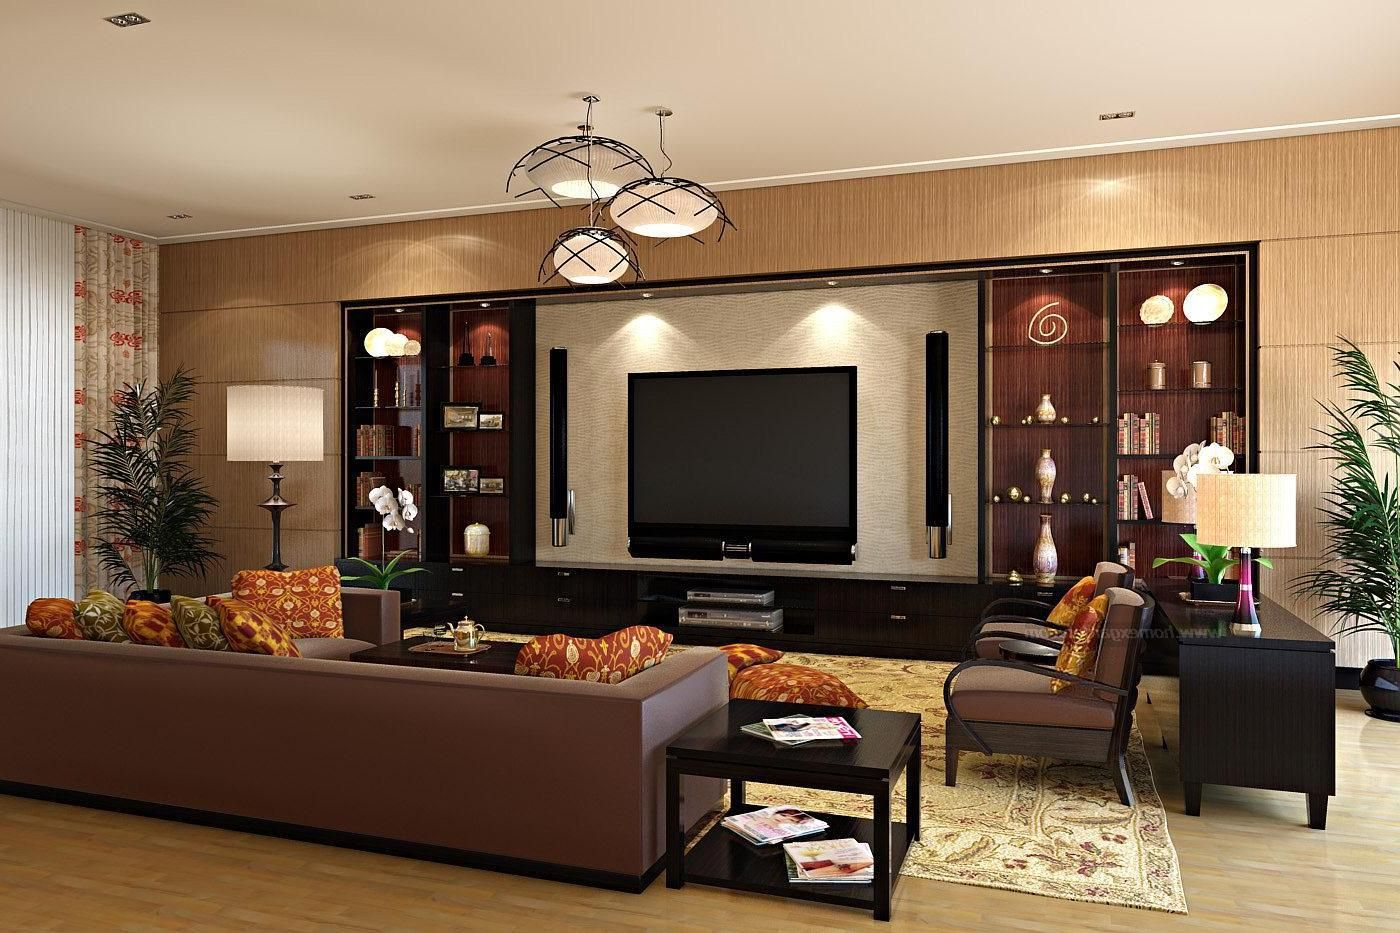 Design Your Living Room House Design Styles 5 Amazing Design  Ideas For The House